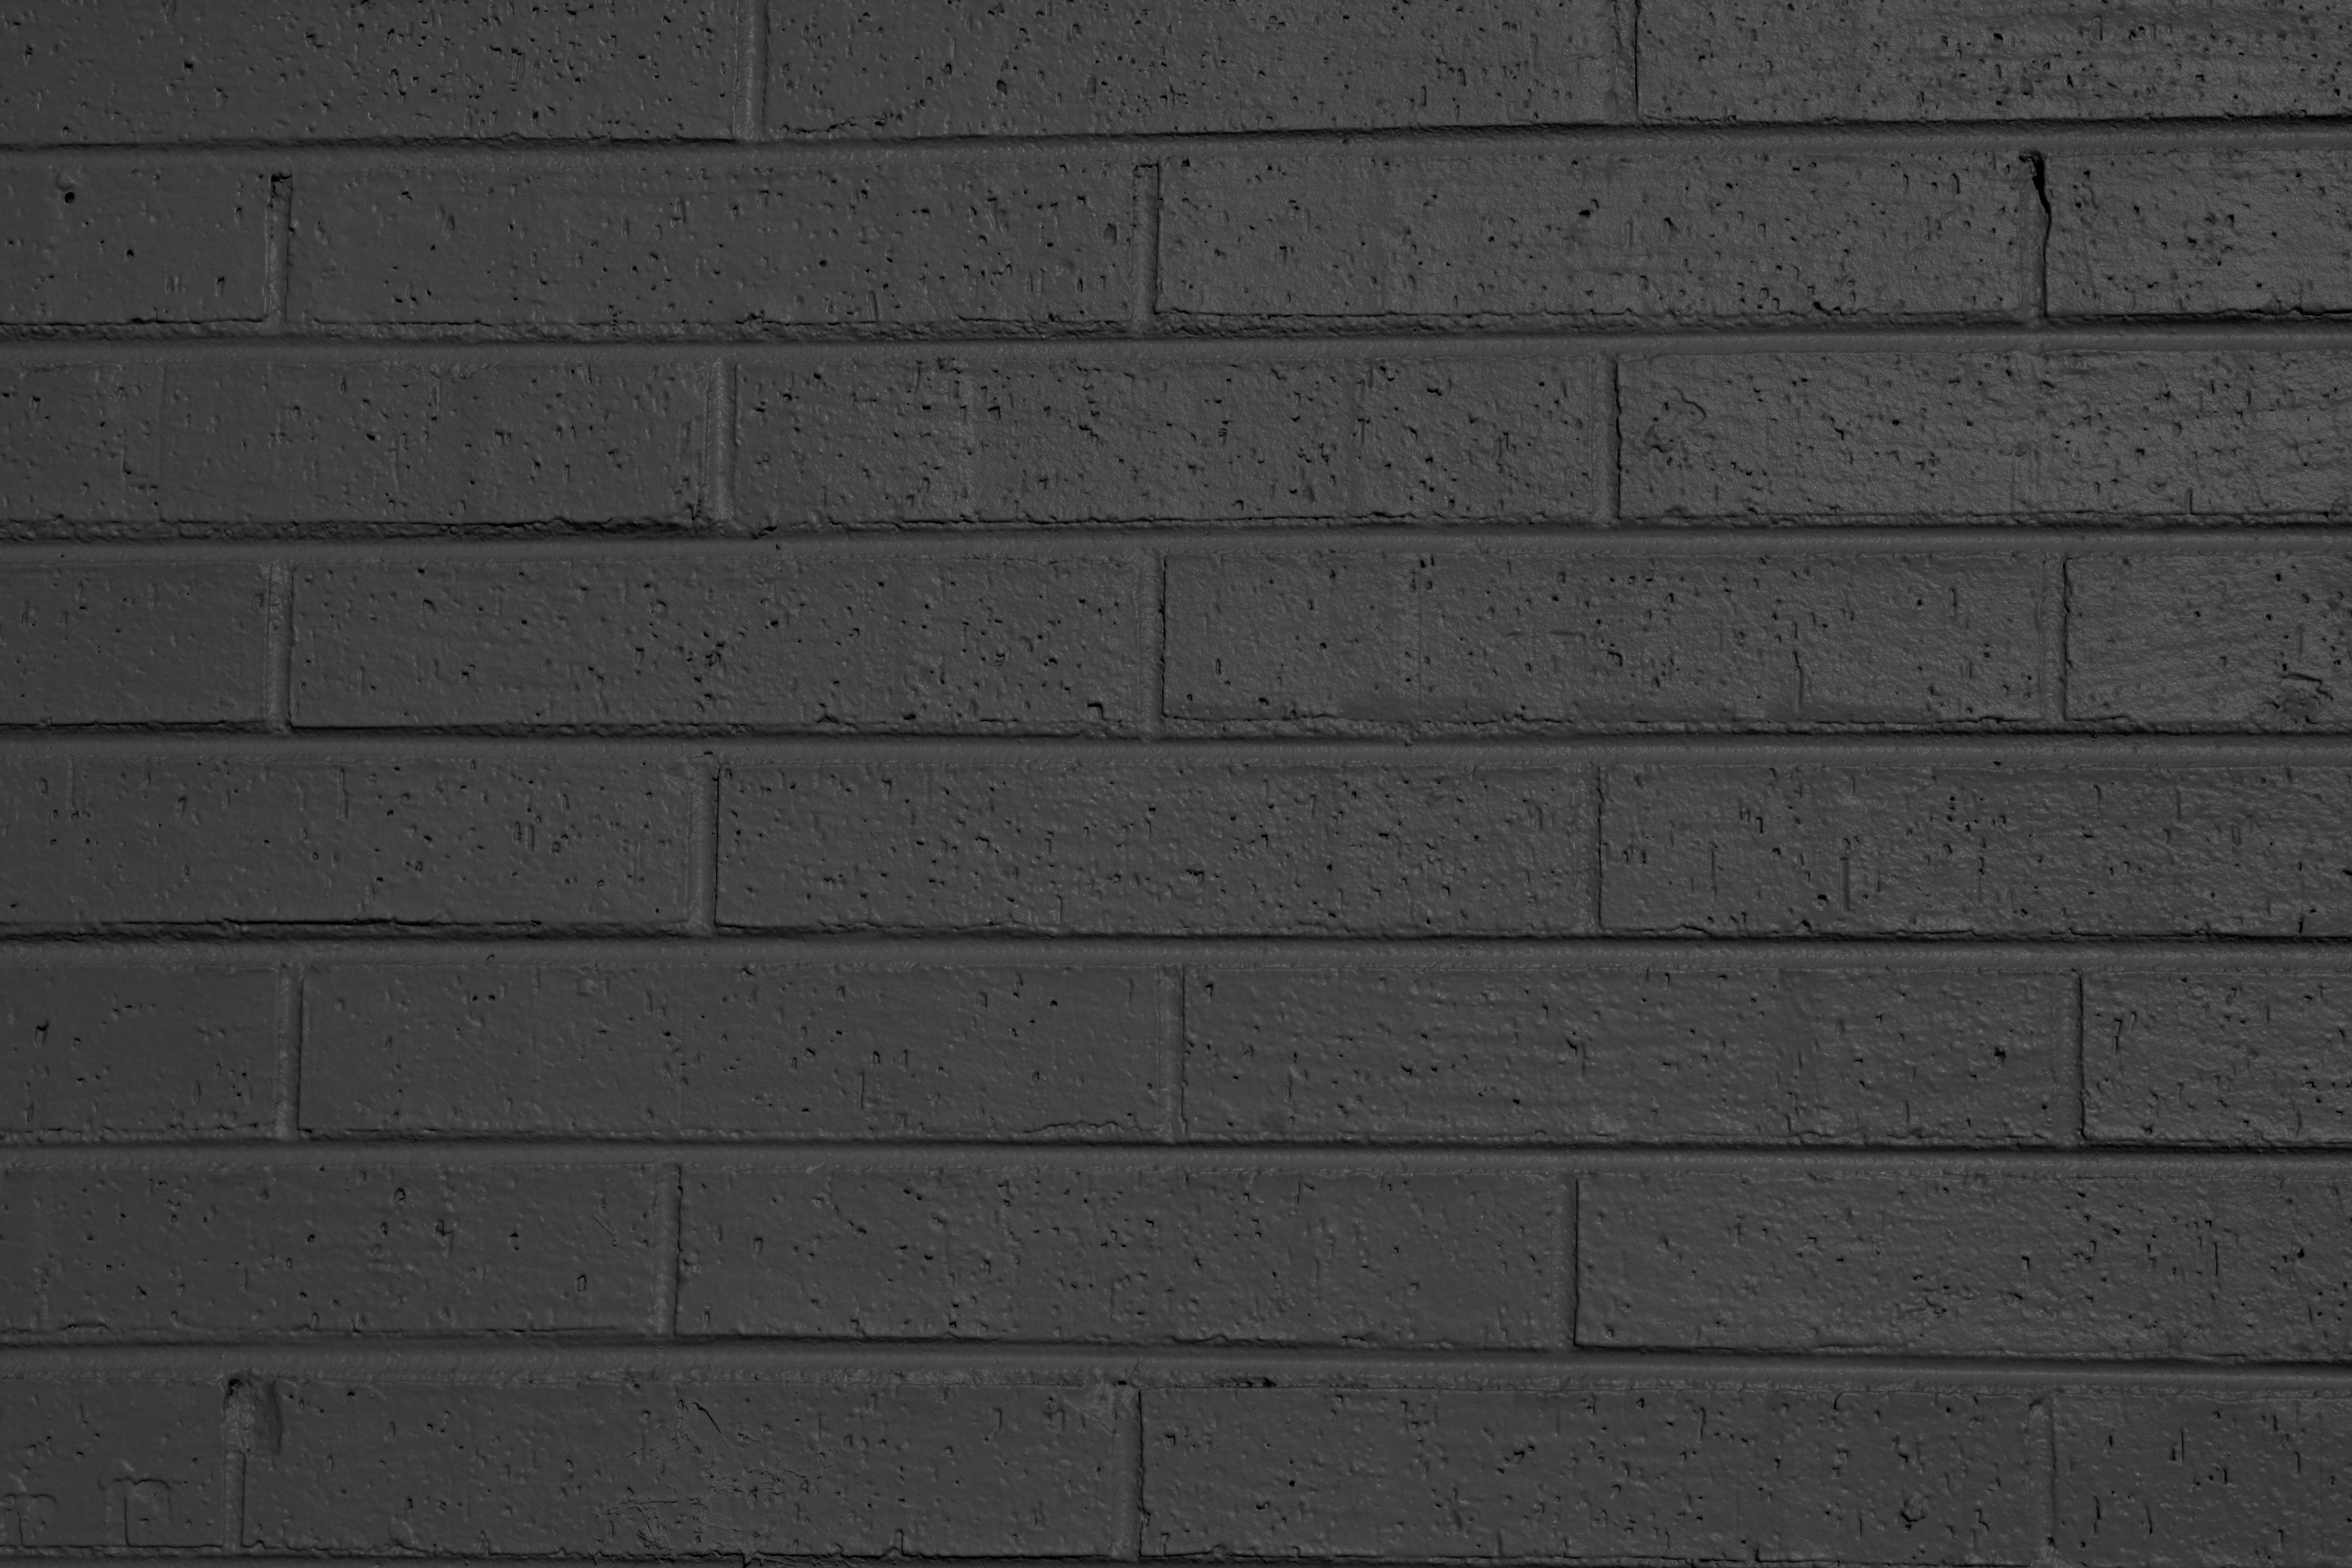 charcoal gray painted brick wall texture picture free photograph